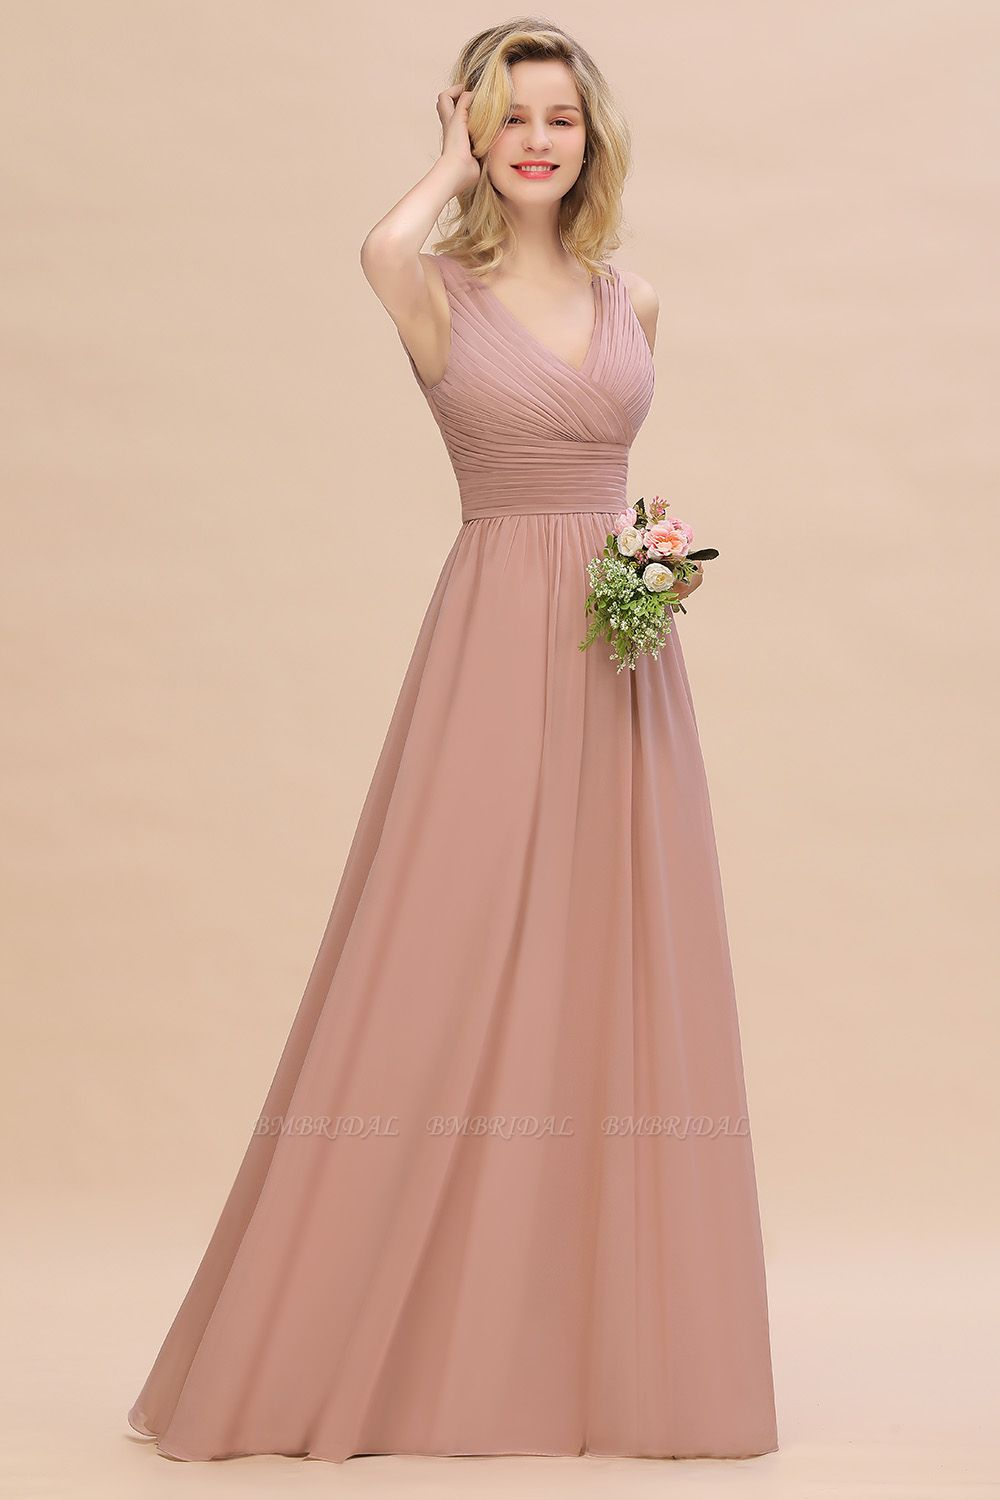 https://www.bmbridal.com/elegant-v-neck-ruffles-bridesmaid-dress-g380?cate_2=36